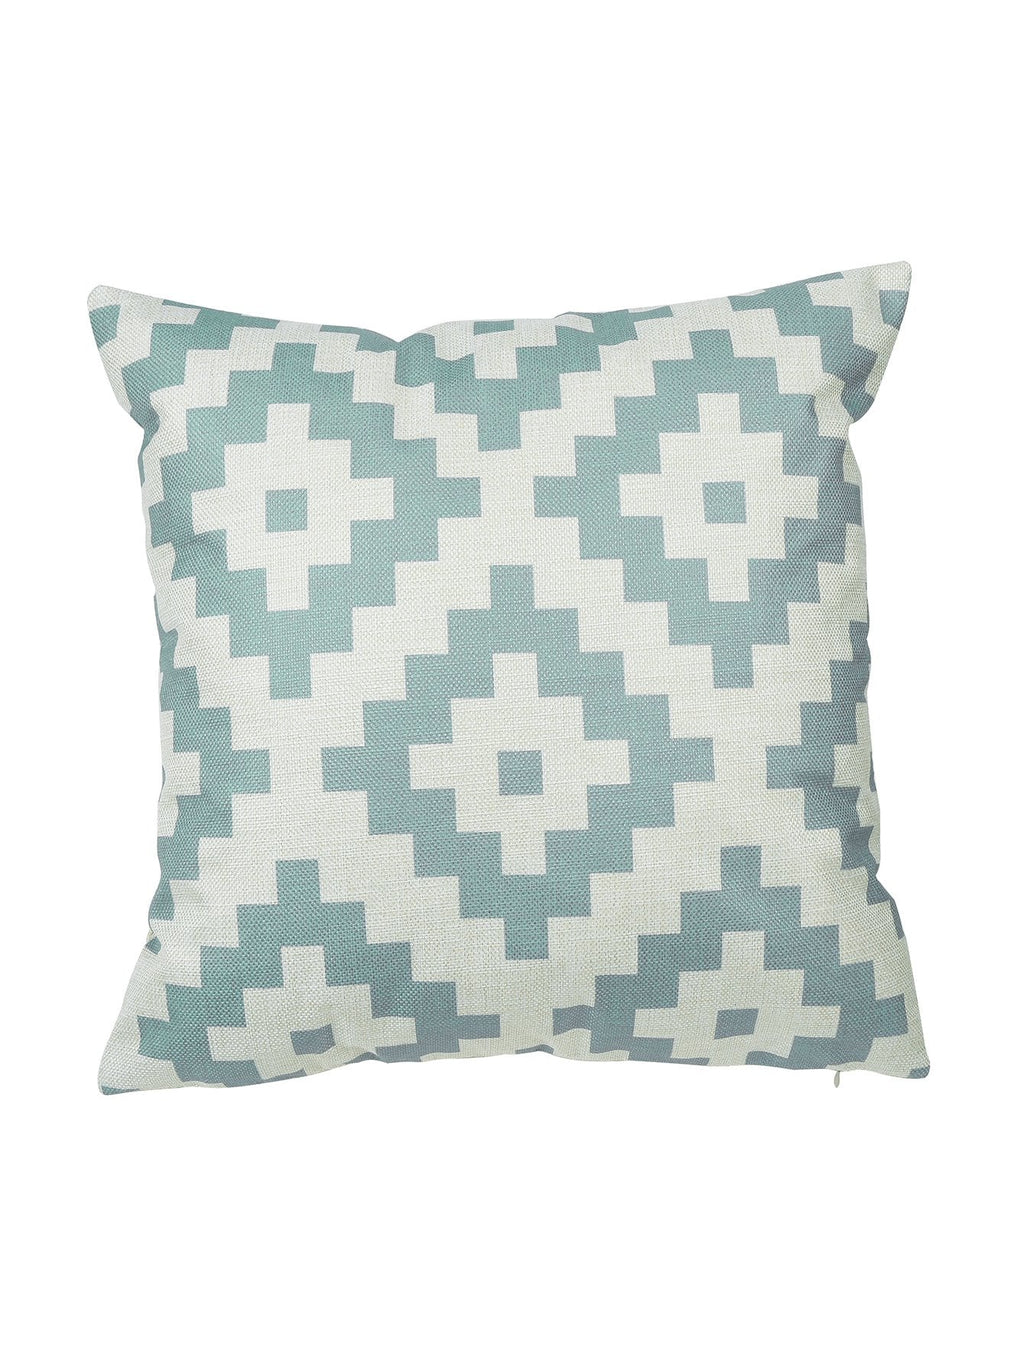 Blue Geometric Print Cushion Cover